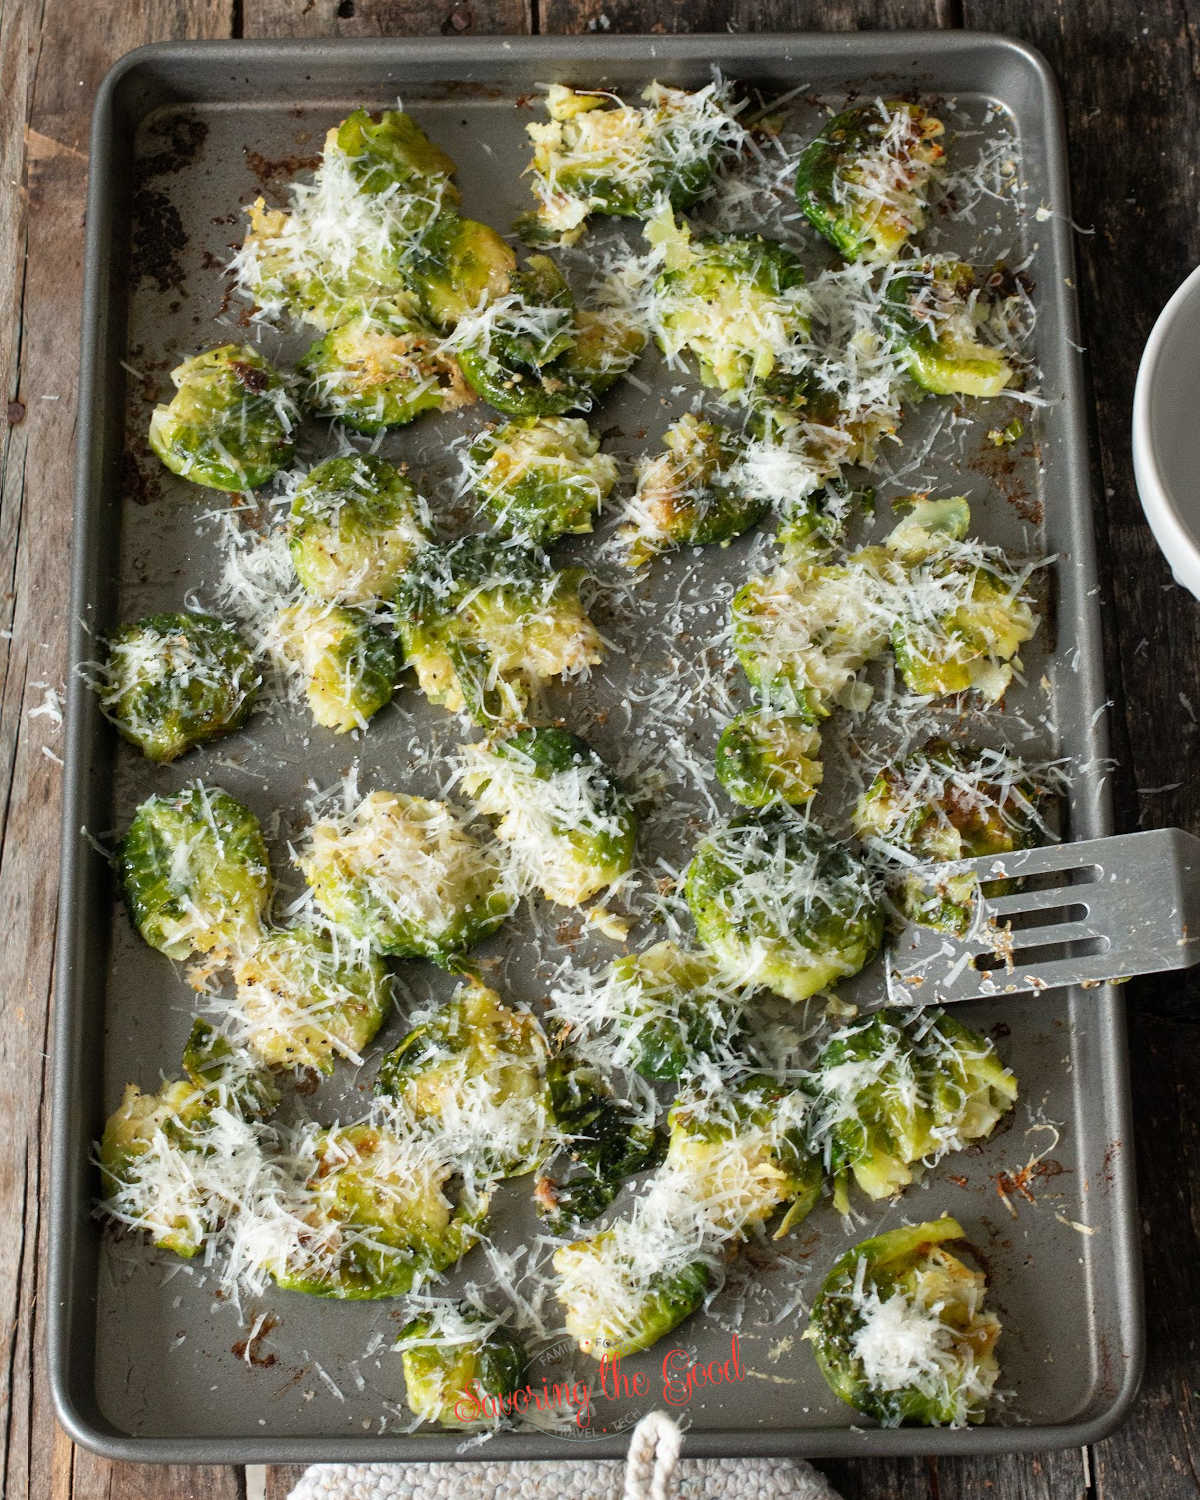 sheet pan with Parmesan cheese on Smashed Brussel Sprouts with a small spatula turning over one